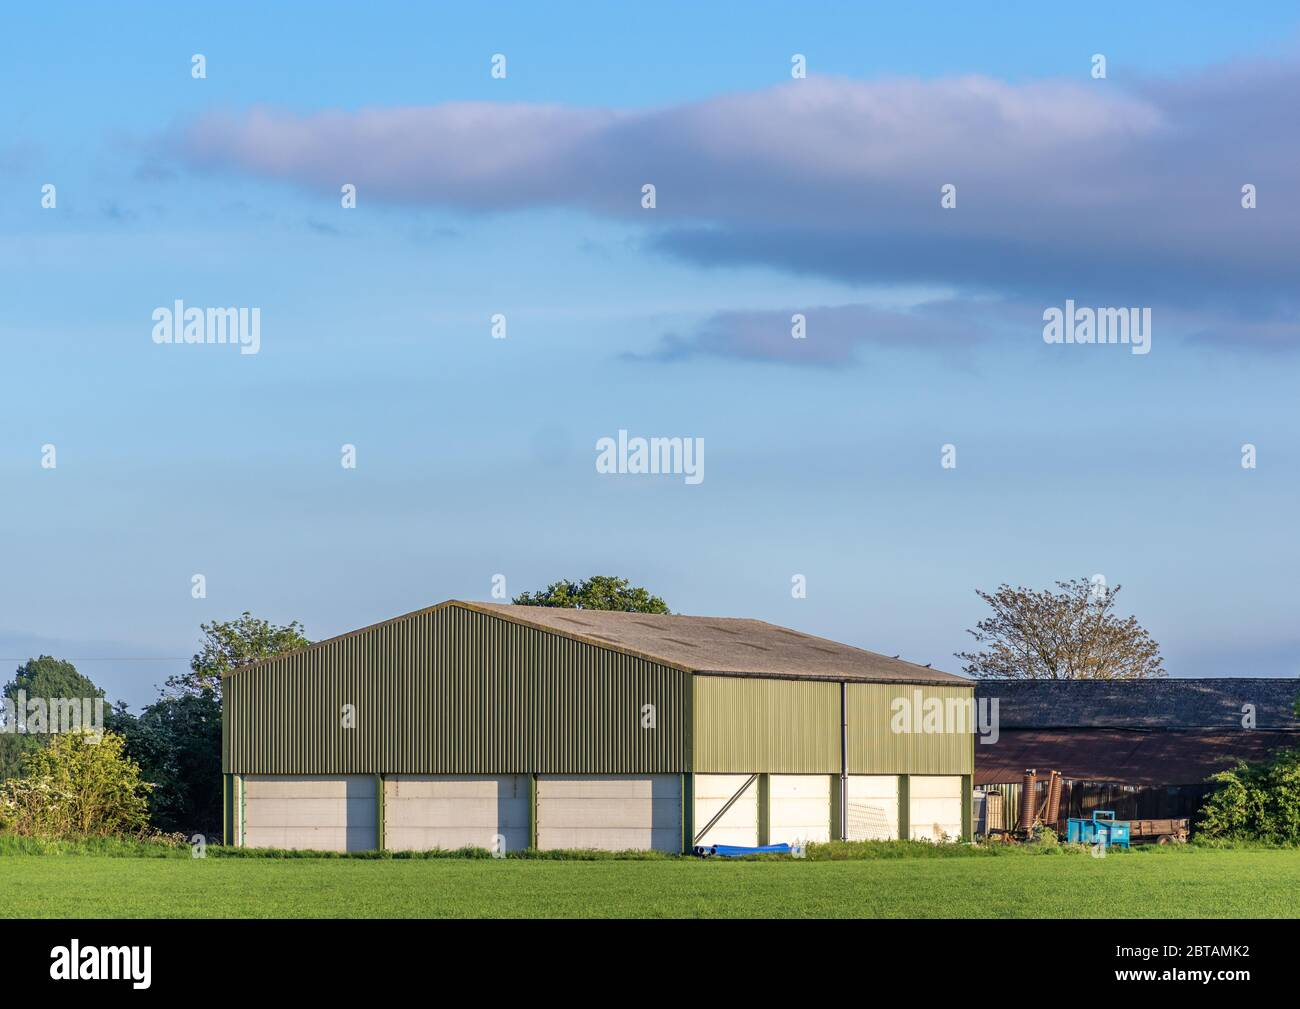 Prefabricated Farm Building In A Rural Setting On A Sunny Day With Blue Sky Stock Photo Alamy